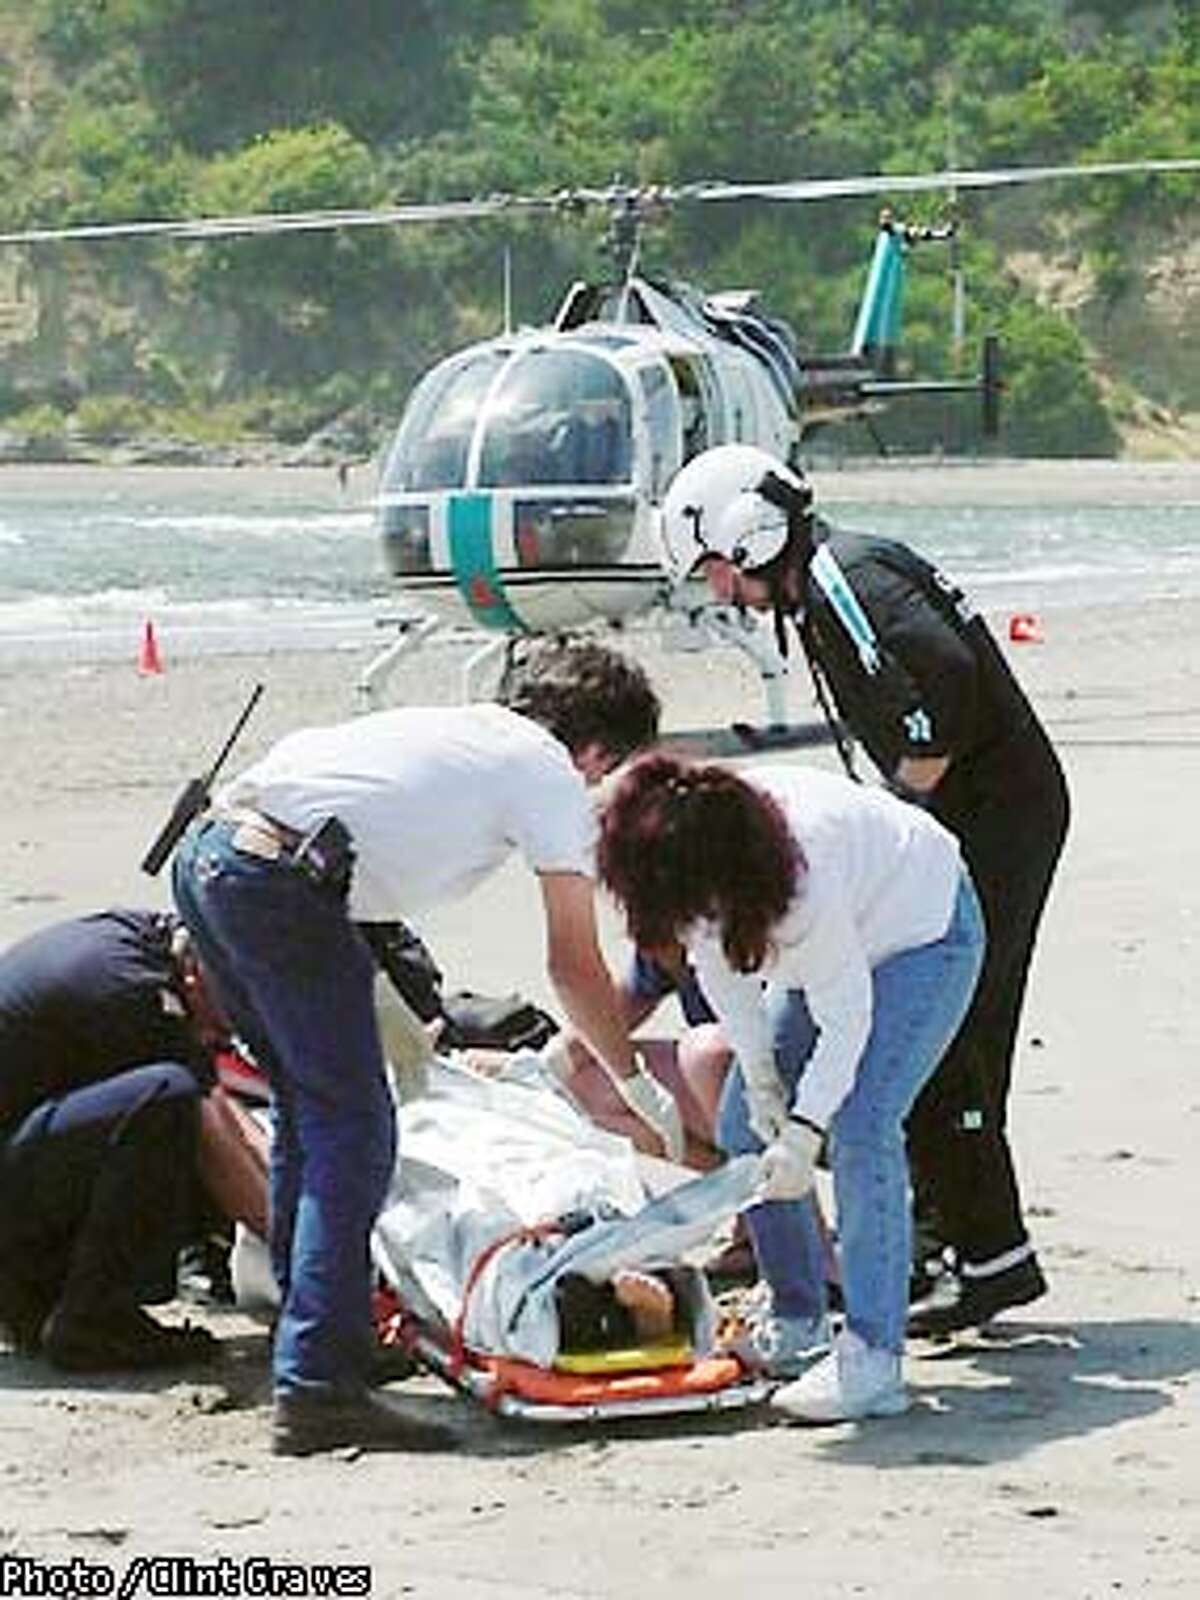 THIS IS A HANDOUT IMAGE. PLEASE VERIFY RIGHTS. Surfer and shark attack victim Lee Fontan being helped by, from left: Aaron Jarvis, Marin Co FD; Toby Bisson, Stinson Beach FD; Tommye (cq) Jarvis, Stinson Beach FD, and Eric Lewis, flight nurse with CALSTAR. Photo By Clint Graves/Special to the Chronicle.